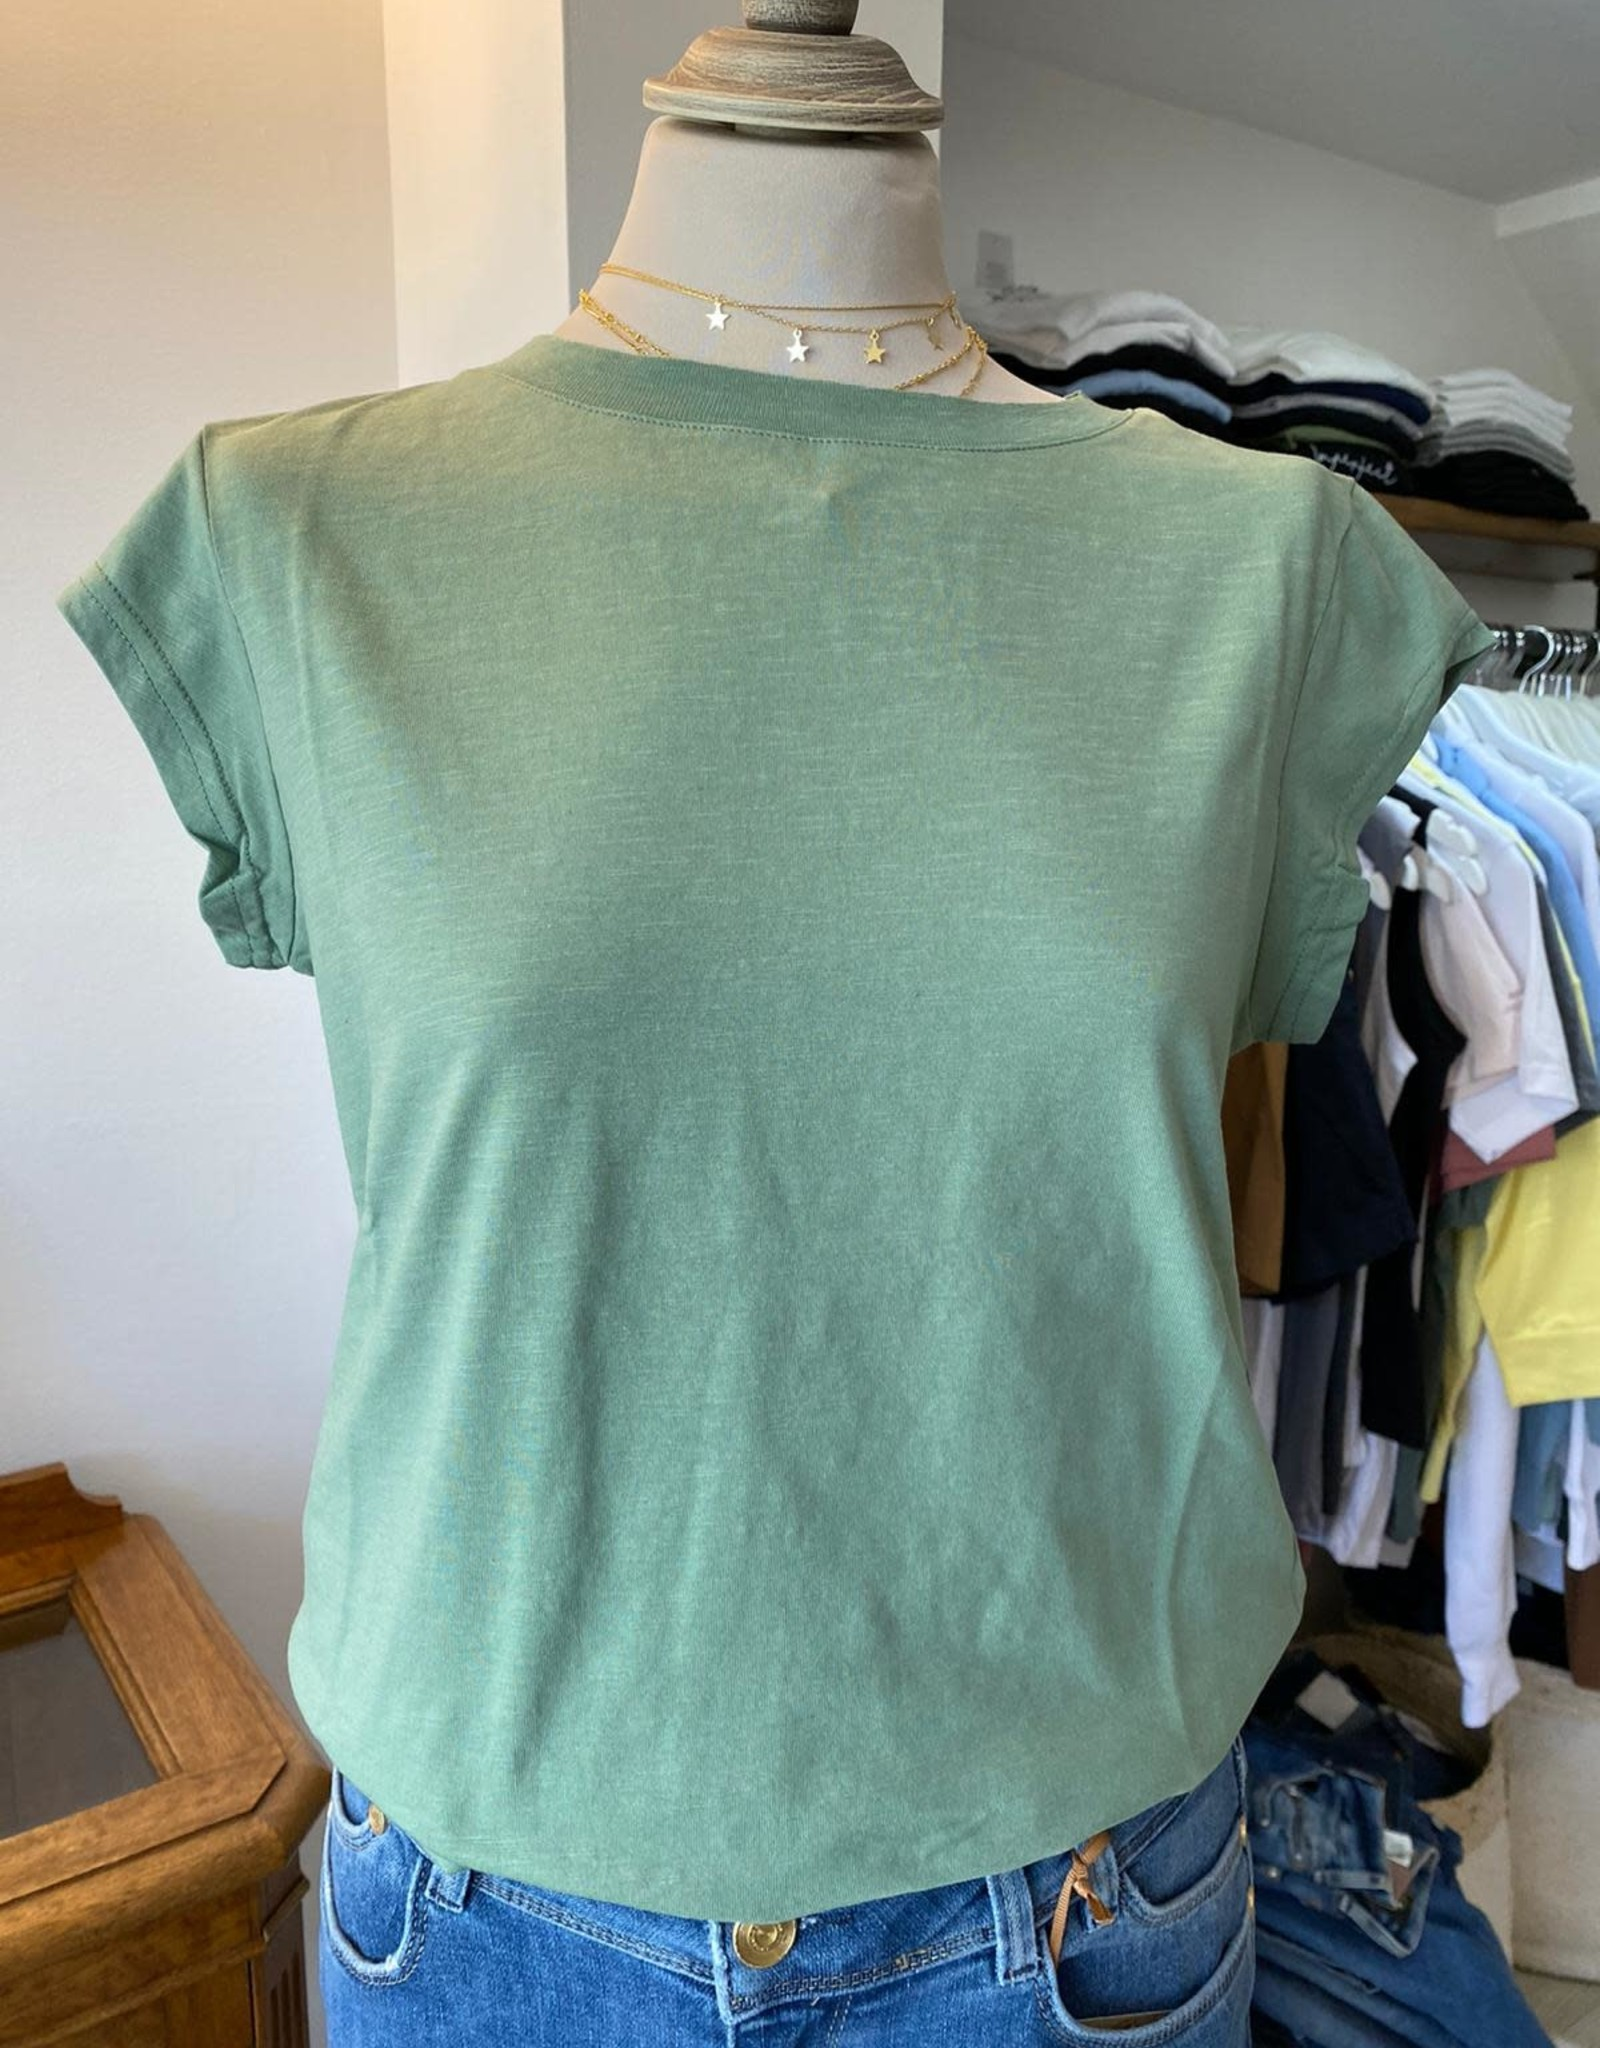 COSTER COPENHAGEN BASIC ROUND-NECK DUST GREEN 488 T-SHIRT B0017 / CCH1100 BY COSTER